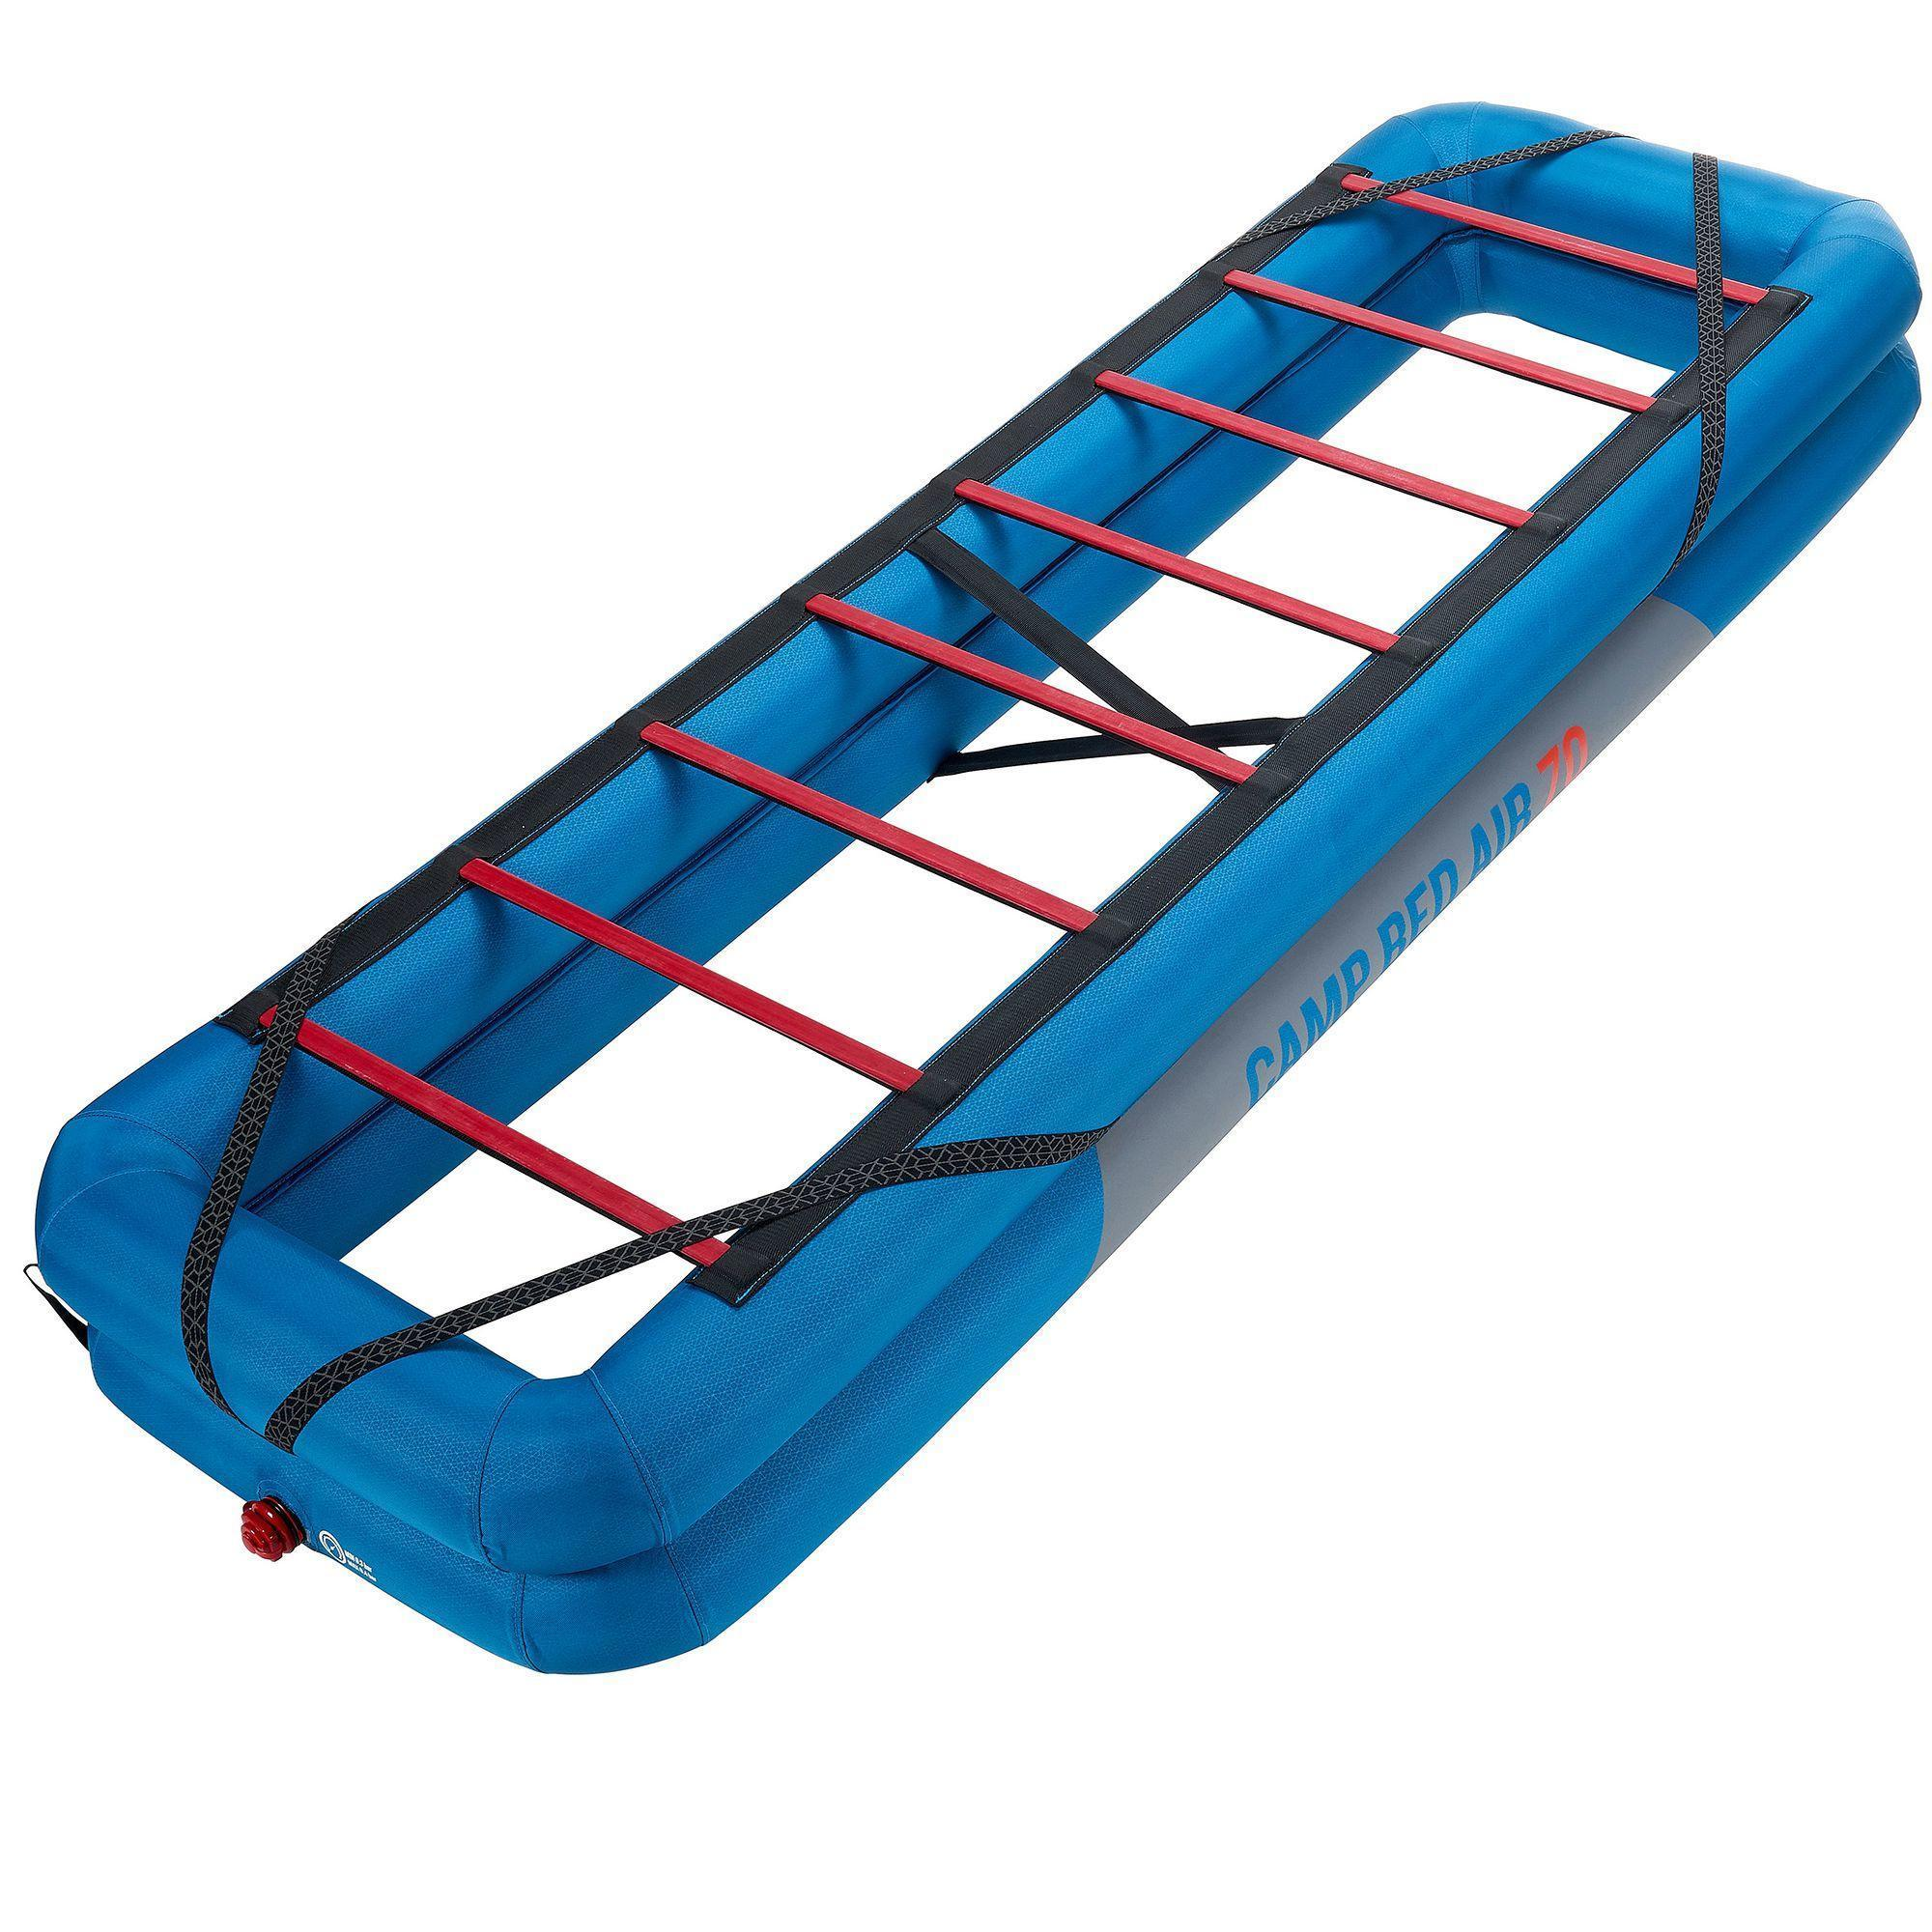 inflatable quechua camp bed id air pers beds base